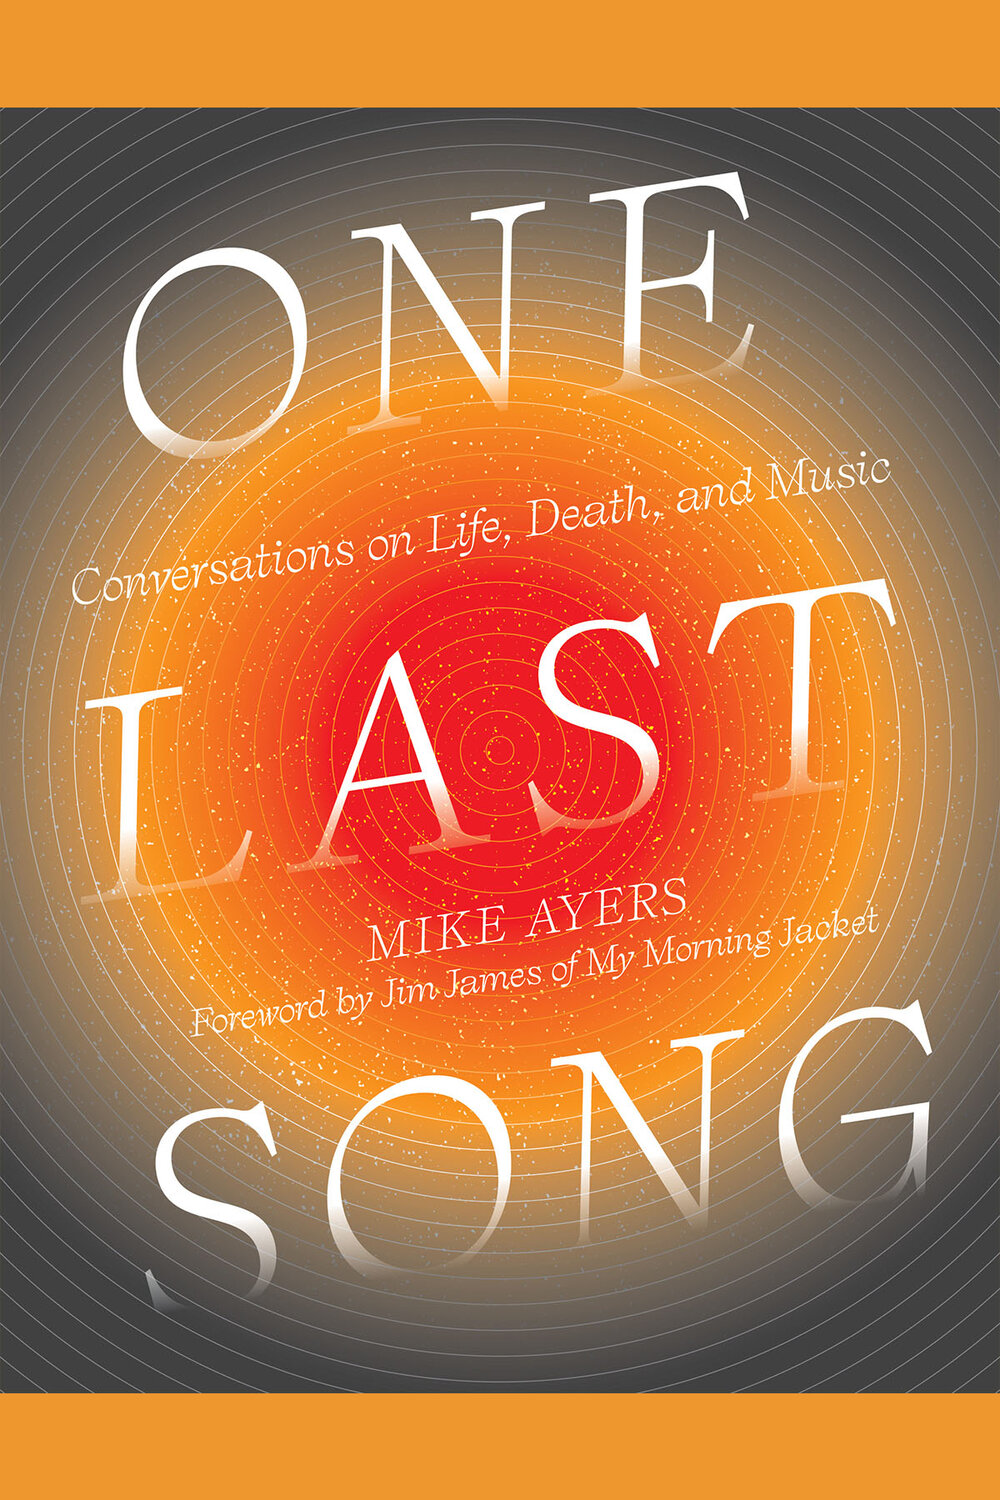 One Last Song: Conversations on Life, Death, and Music by Mike Ayers